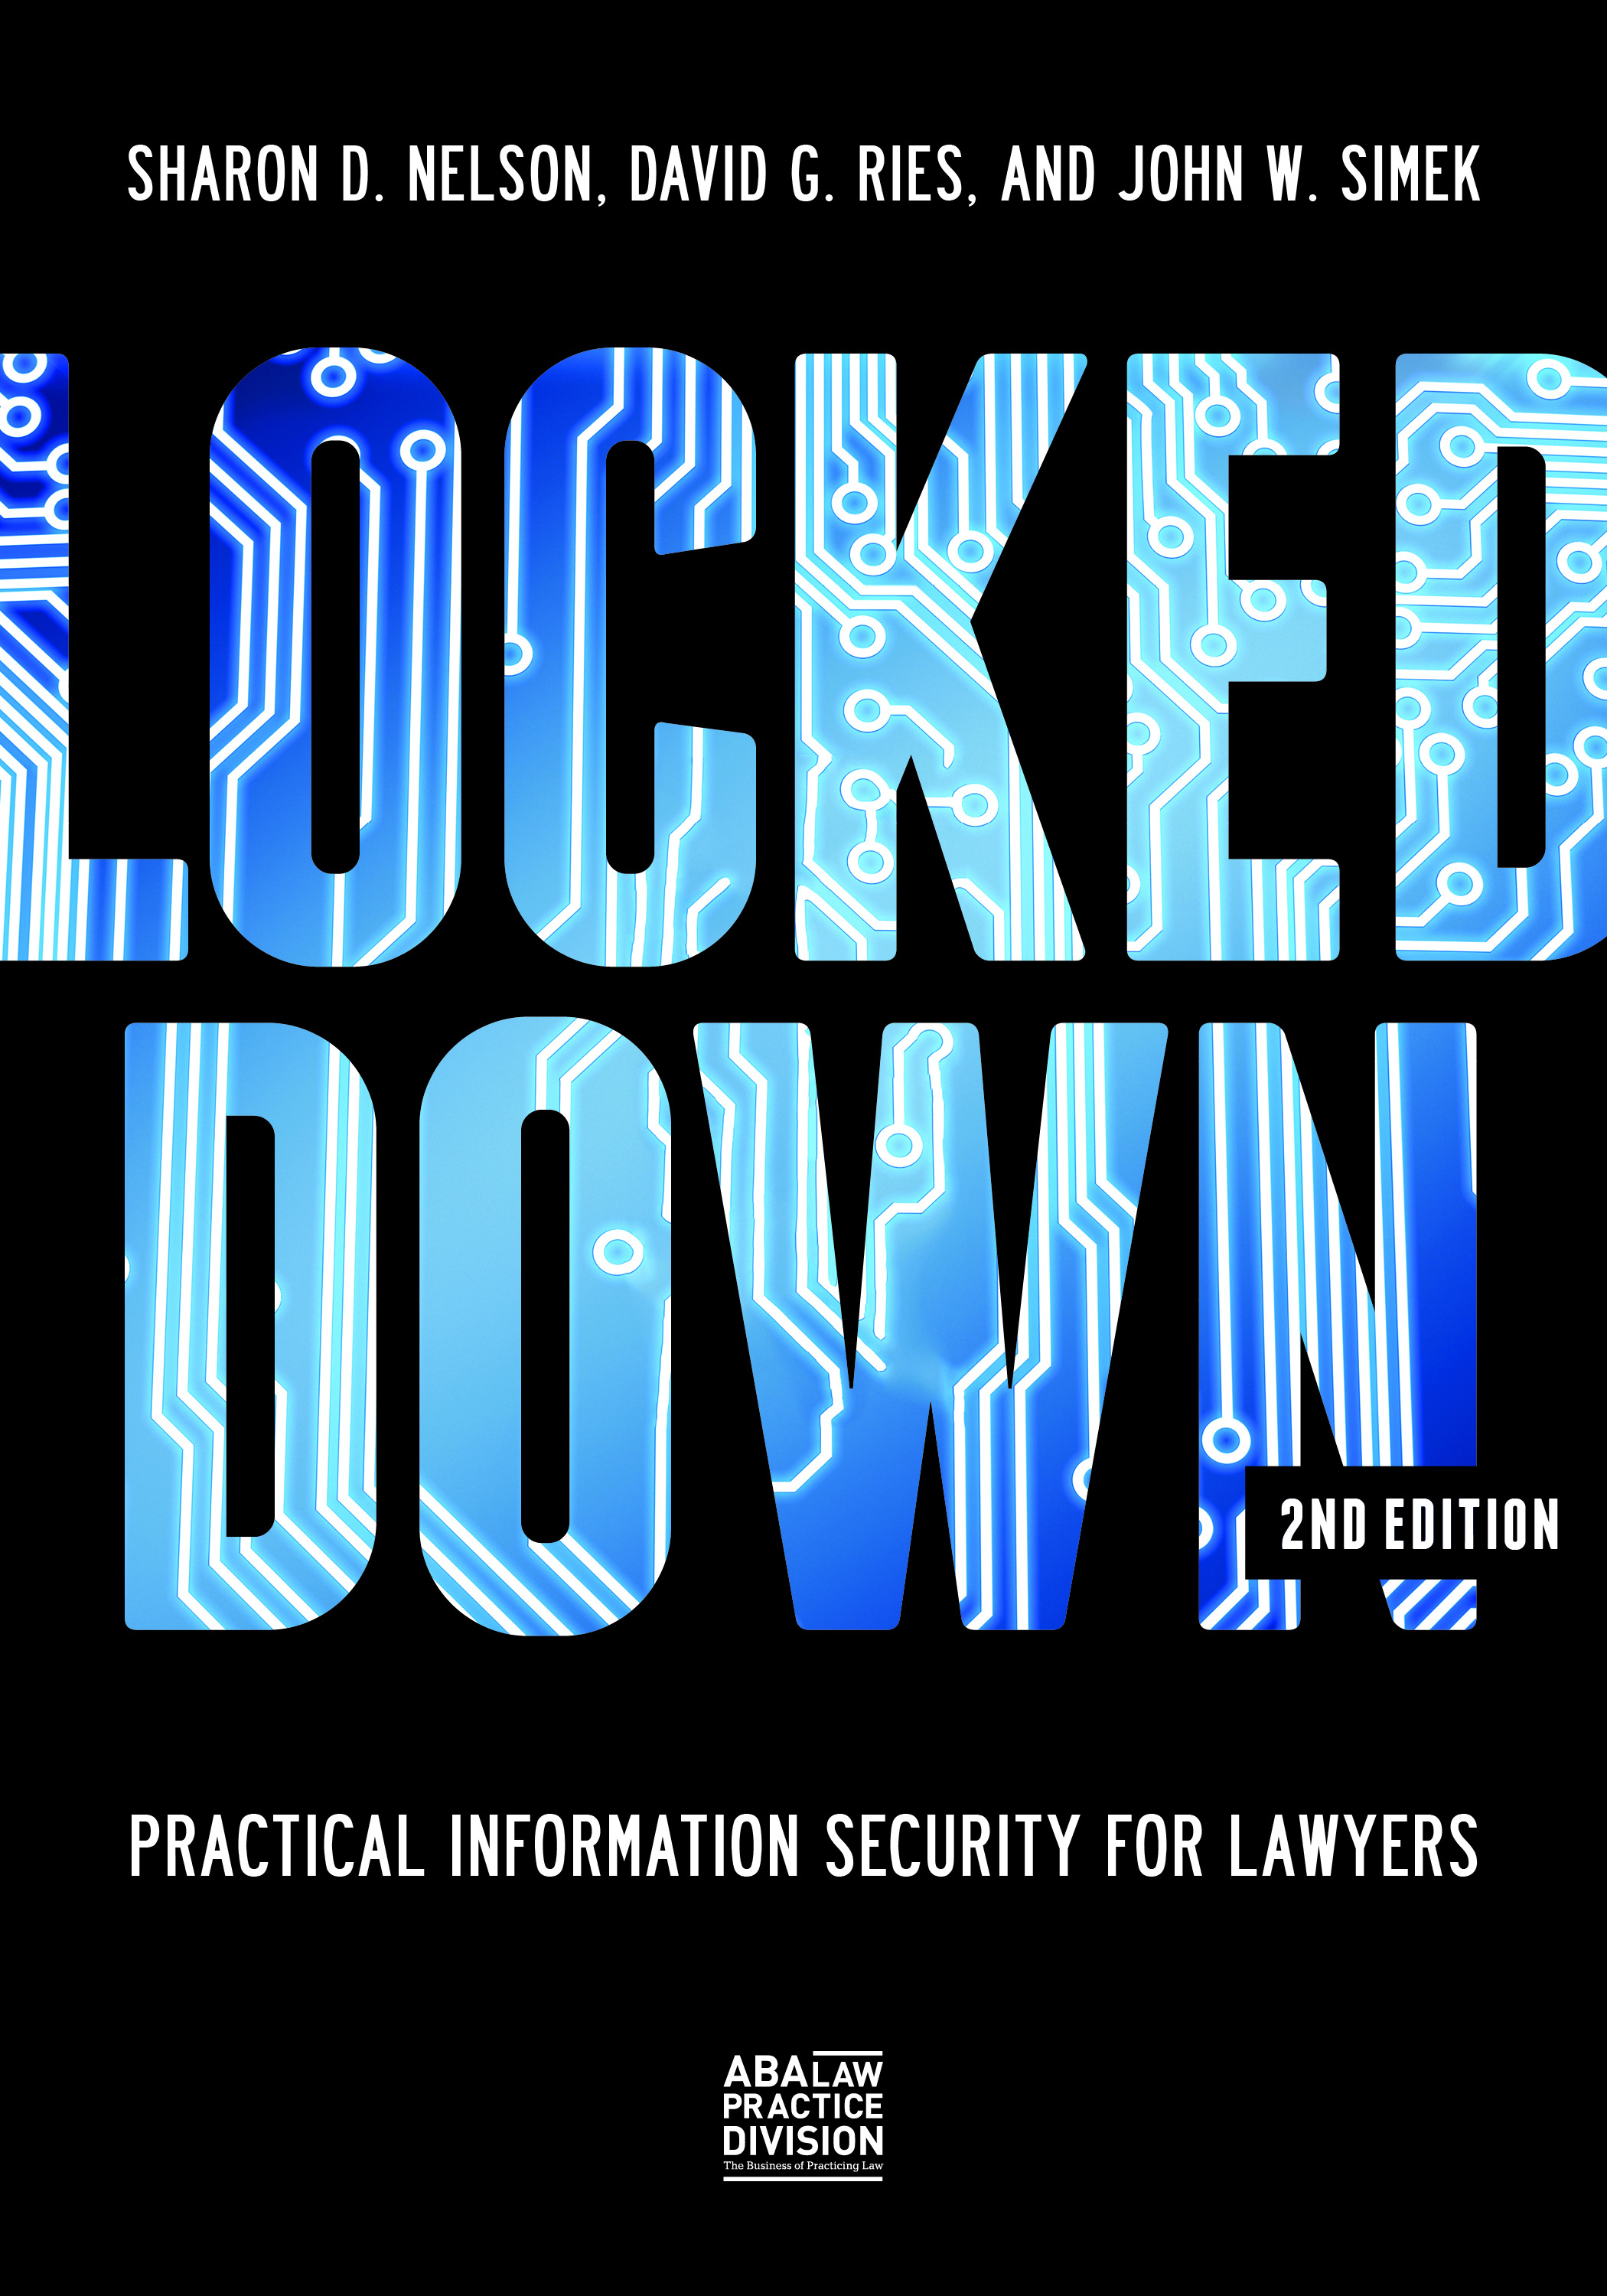 Locked Down: Practical Information Security for Lawyers, Second Edition